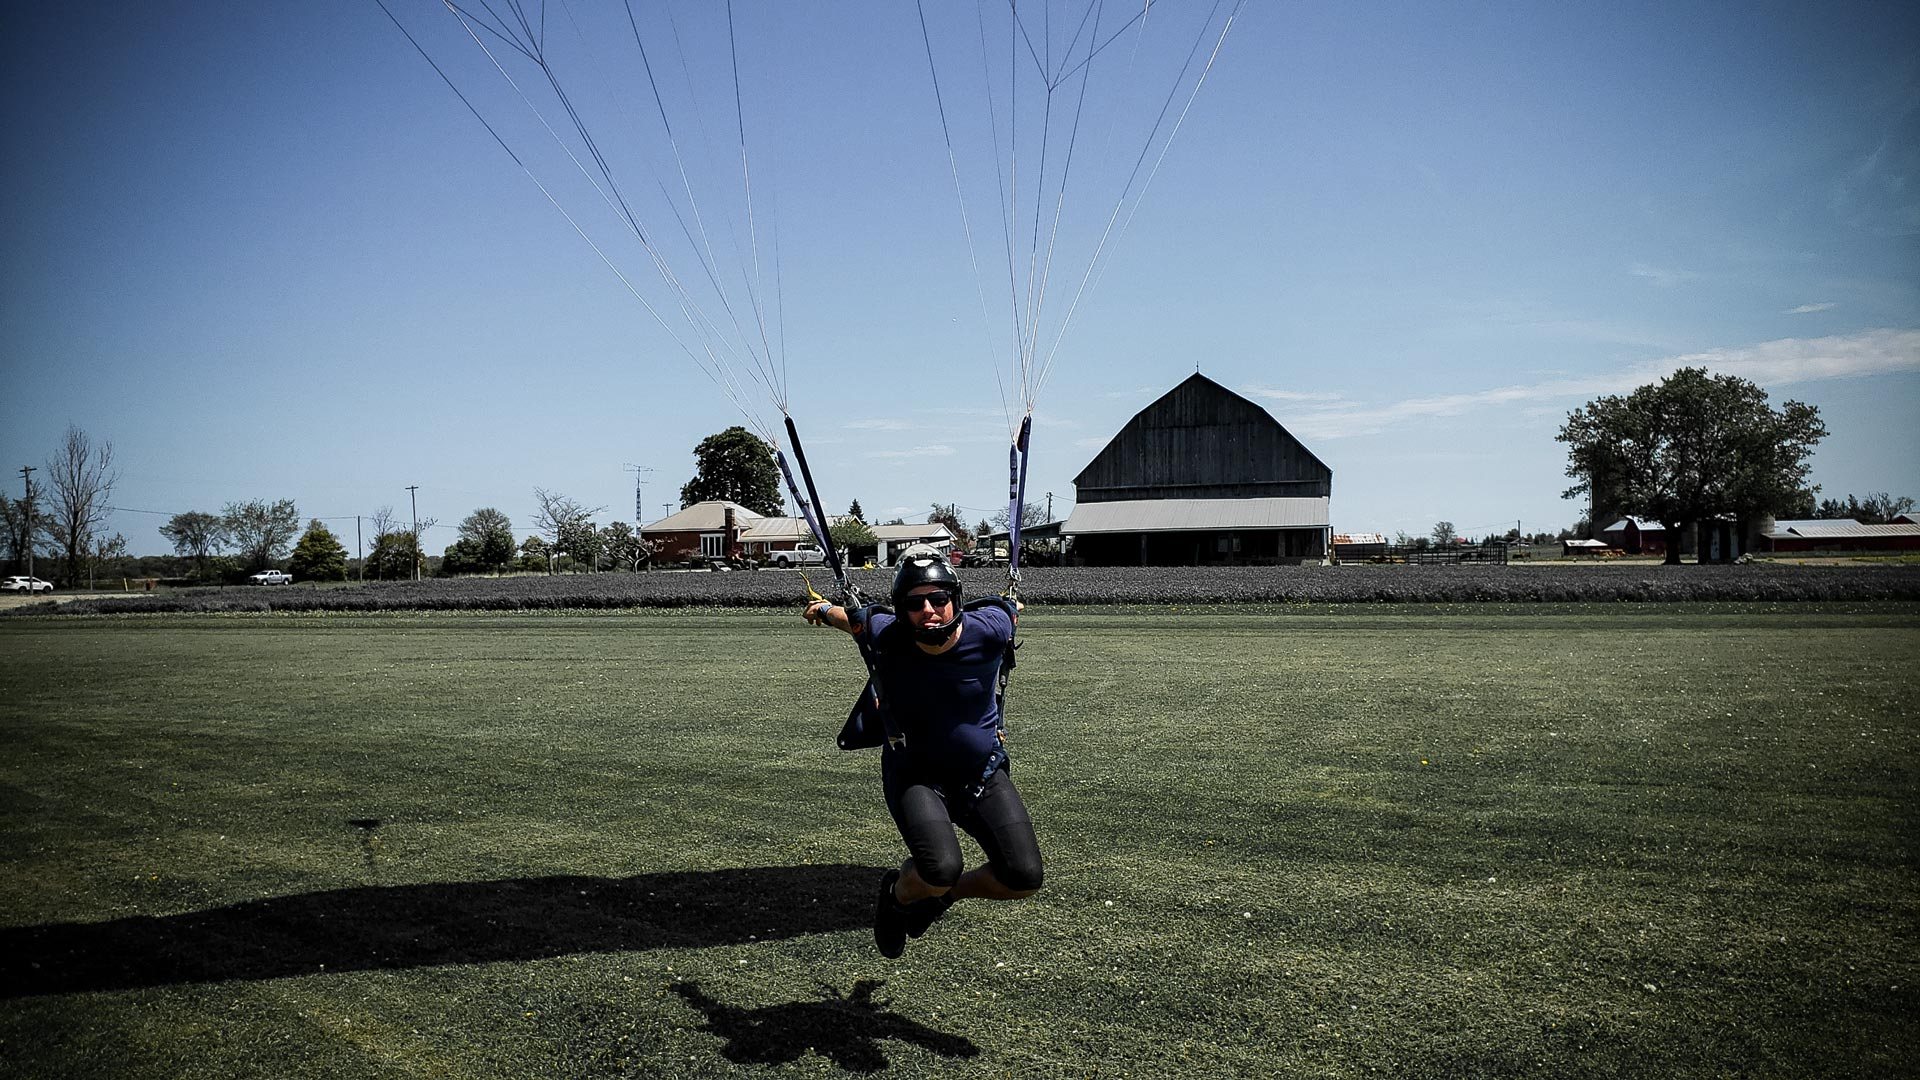 Swooping allowed at Skydive Ontario